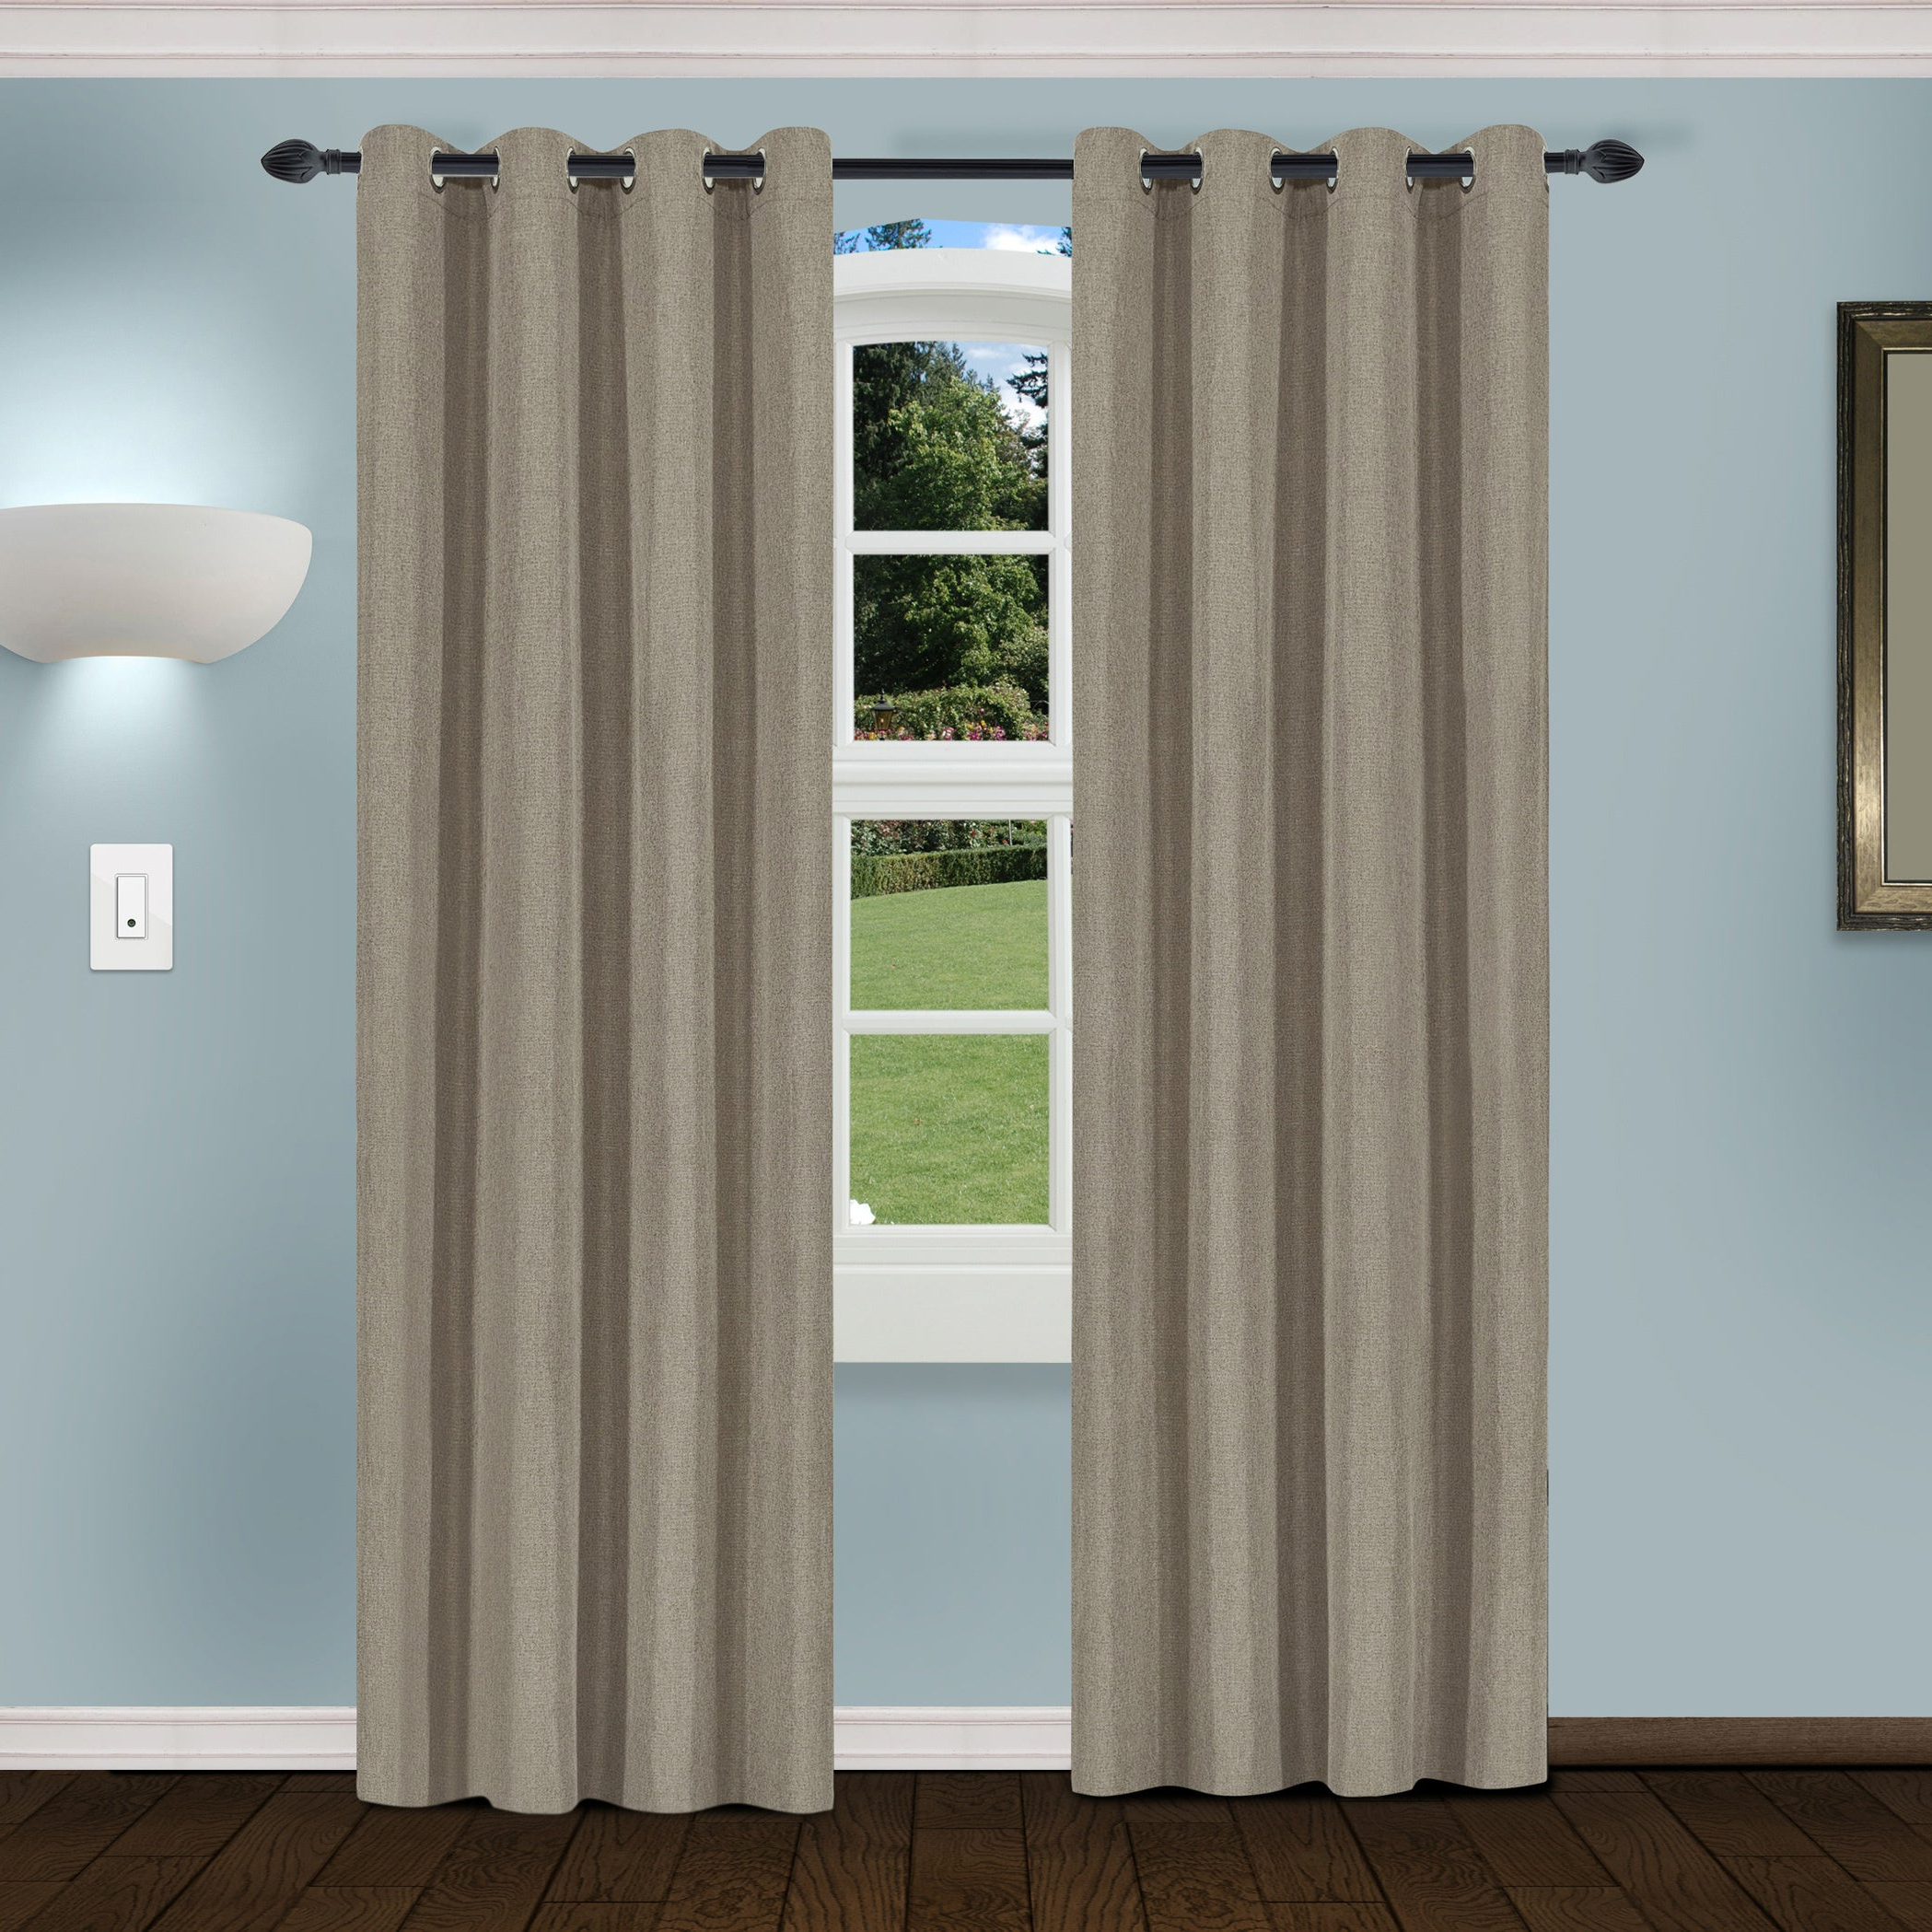 2020 Superior Solid Insulated Thermal Blackout Grommet Curtain Panel Pairs With Regard To Superior Linen Insulated Thermal Blackout Grommet Curtain Panel Pair (View 1 of 20)